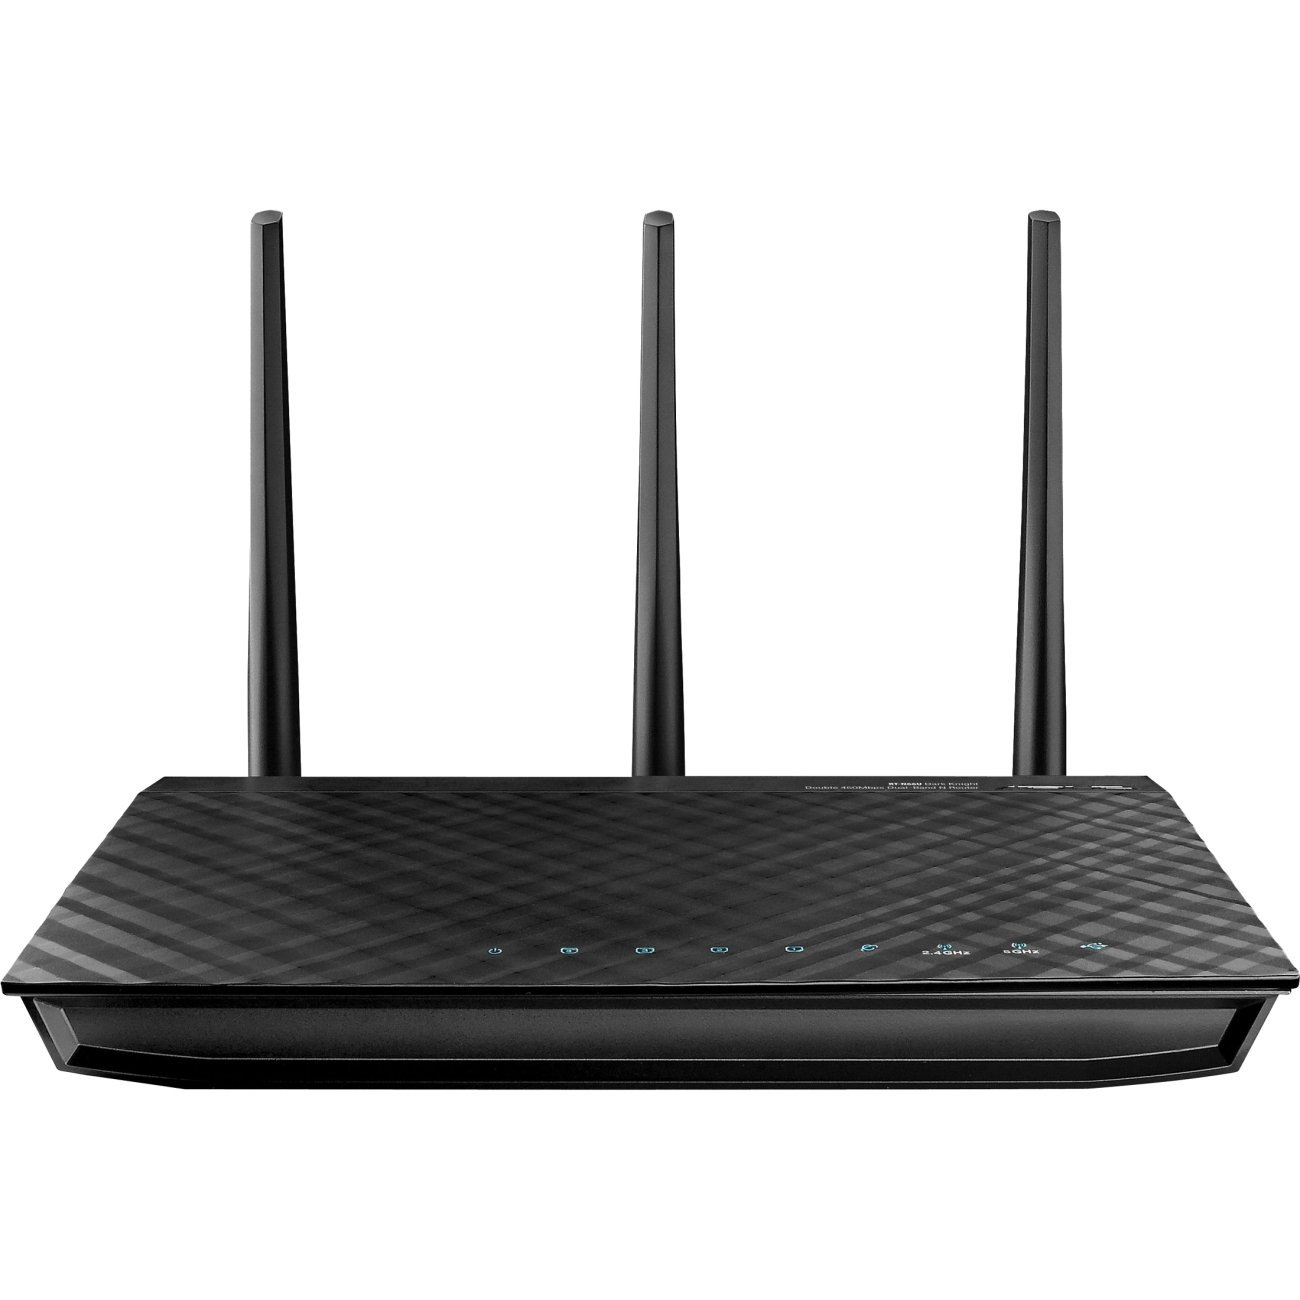 Medium End Internet Router (ASUS RT-N66U)